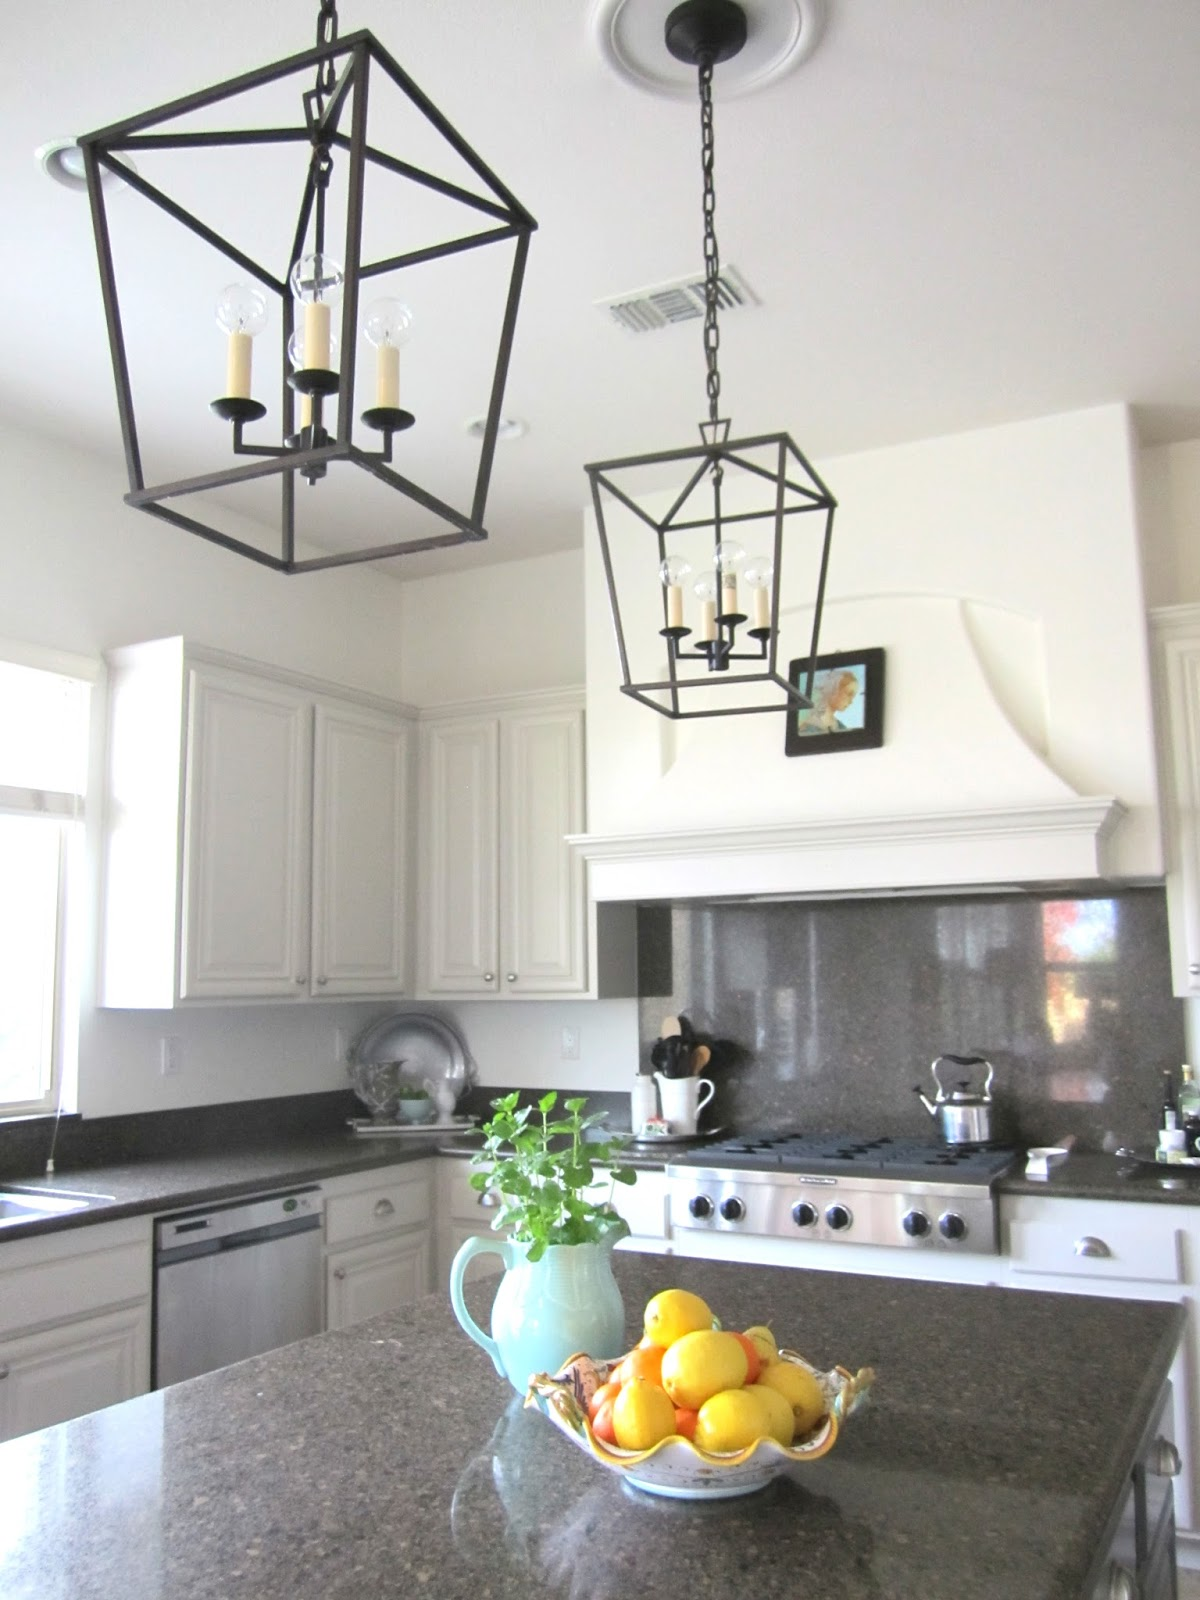 a phased decorating approach lantern kitchen lighting Notice the round light bulbs for a fun look There s no glass in these lanterns which is good since glass is hard to keep clean in kitchens